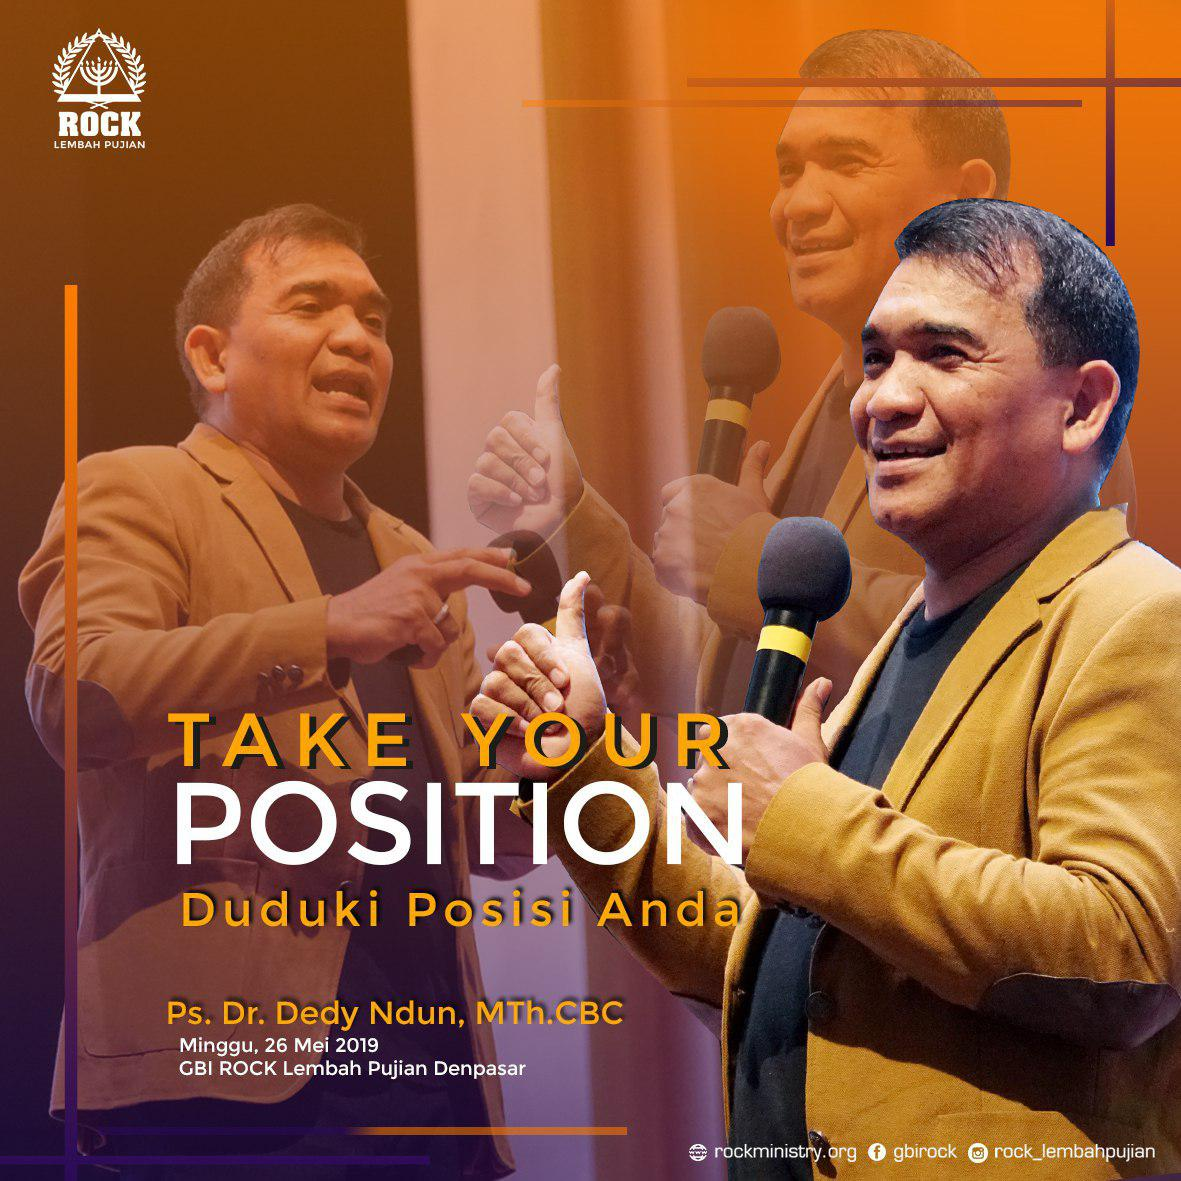 Take Your Position (Duduki Posisi Anda) | Ps. Dr. Dedy Ndun, MTh. CBC